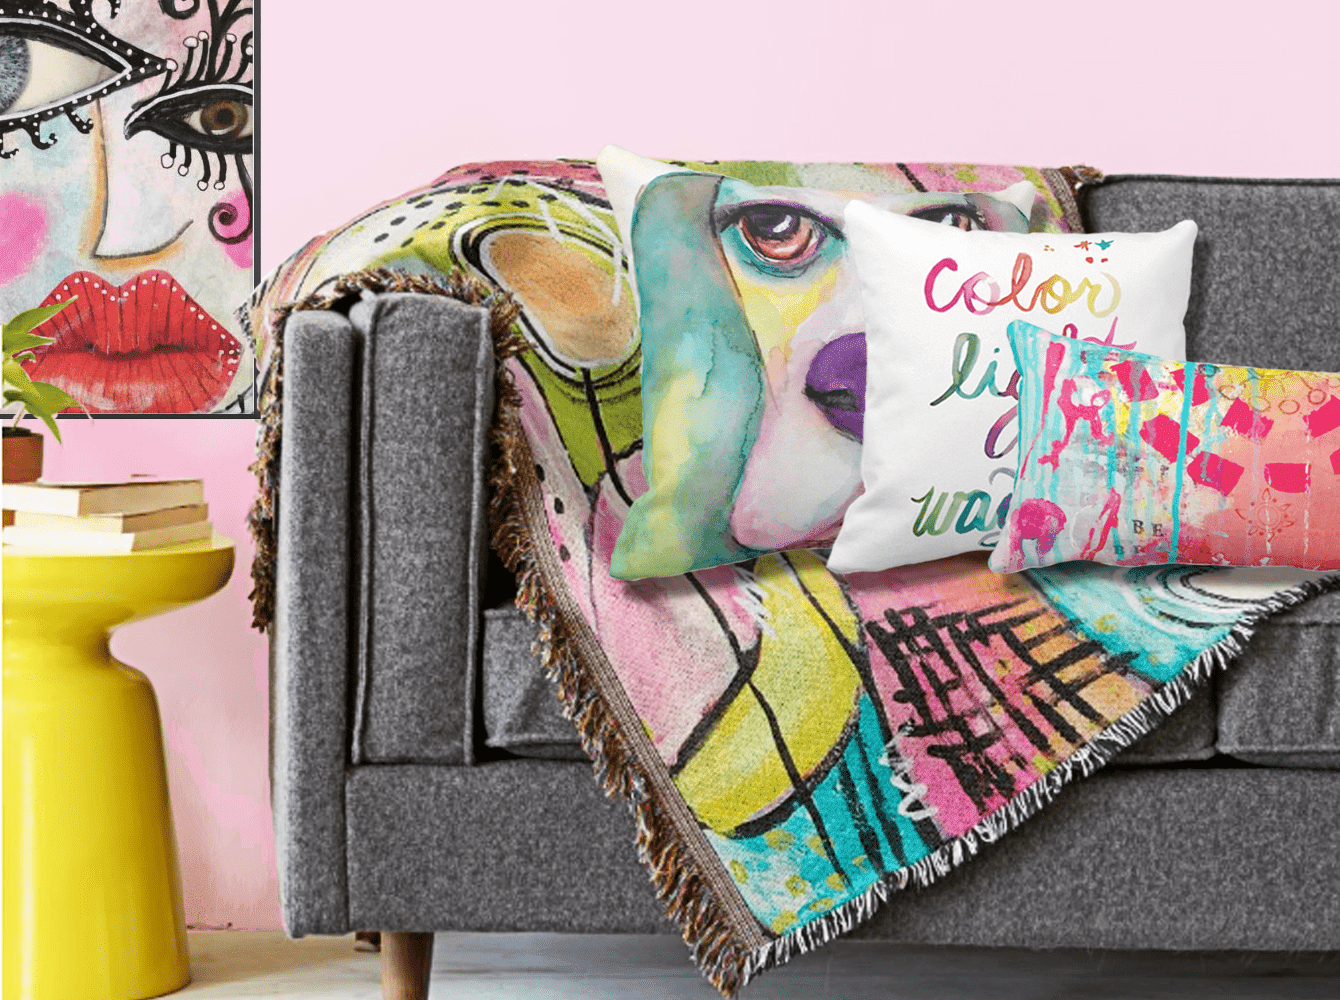 Fun Colorful Home Accents to Brighten up Your Space